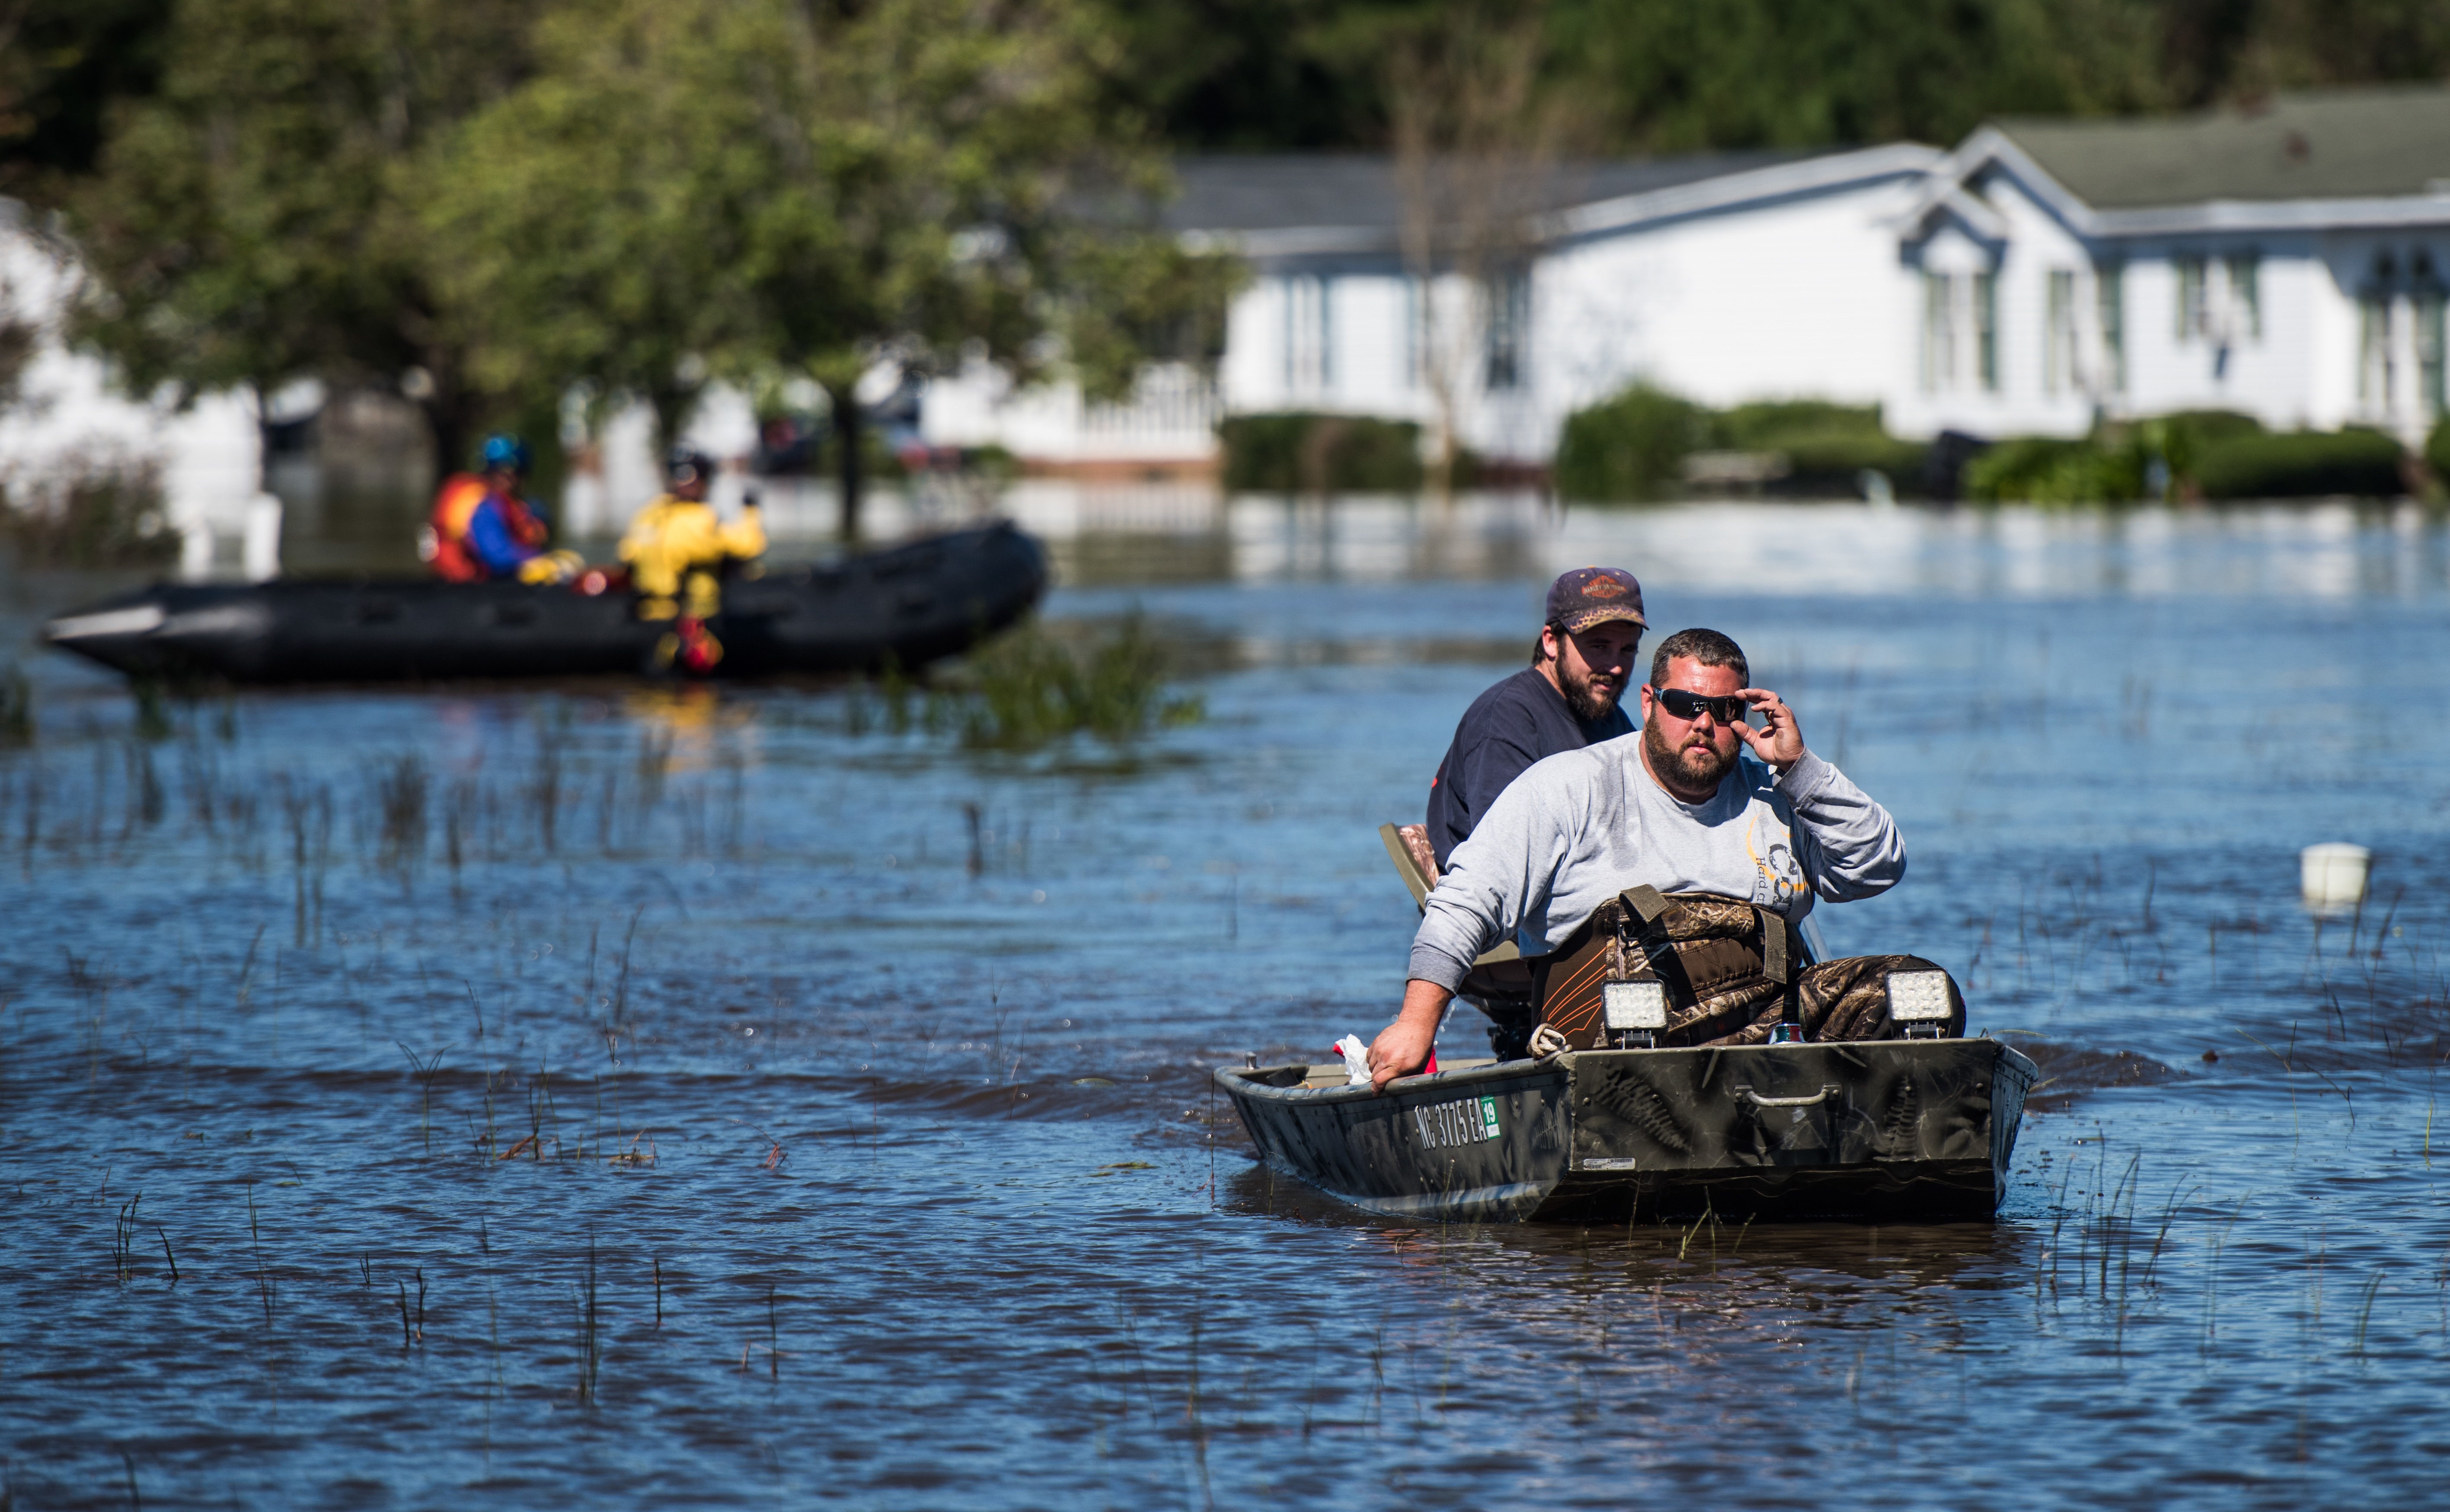 Residents and rescue teams navigate floodwaters in Lumberton on Monday. The U.S. death toll from Hurricane Matthew has climbed to more than 20 people.